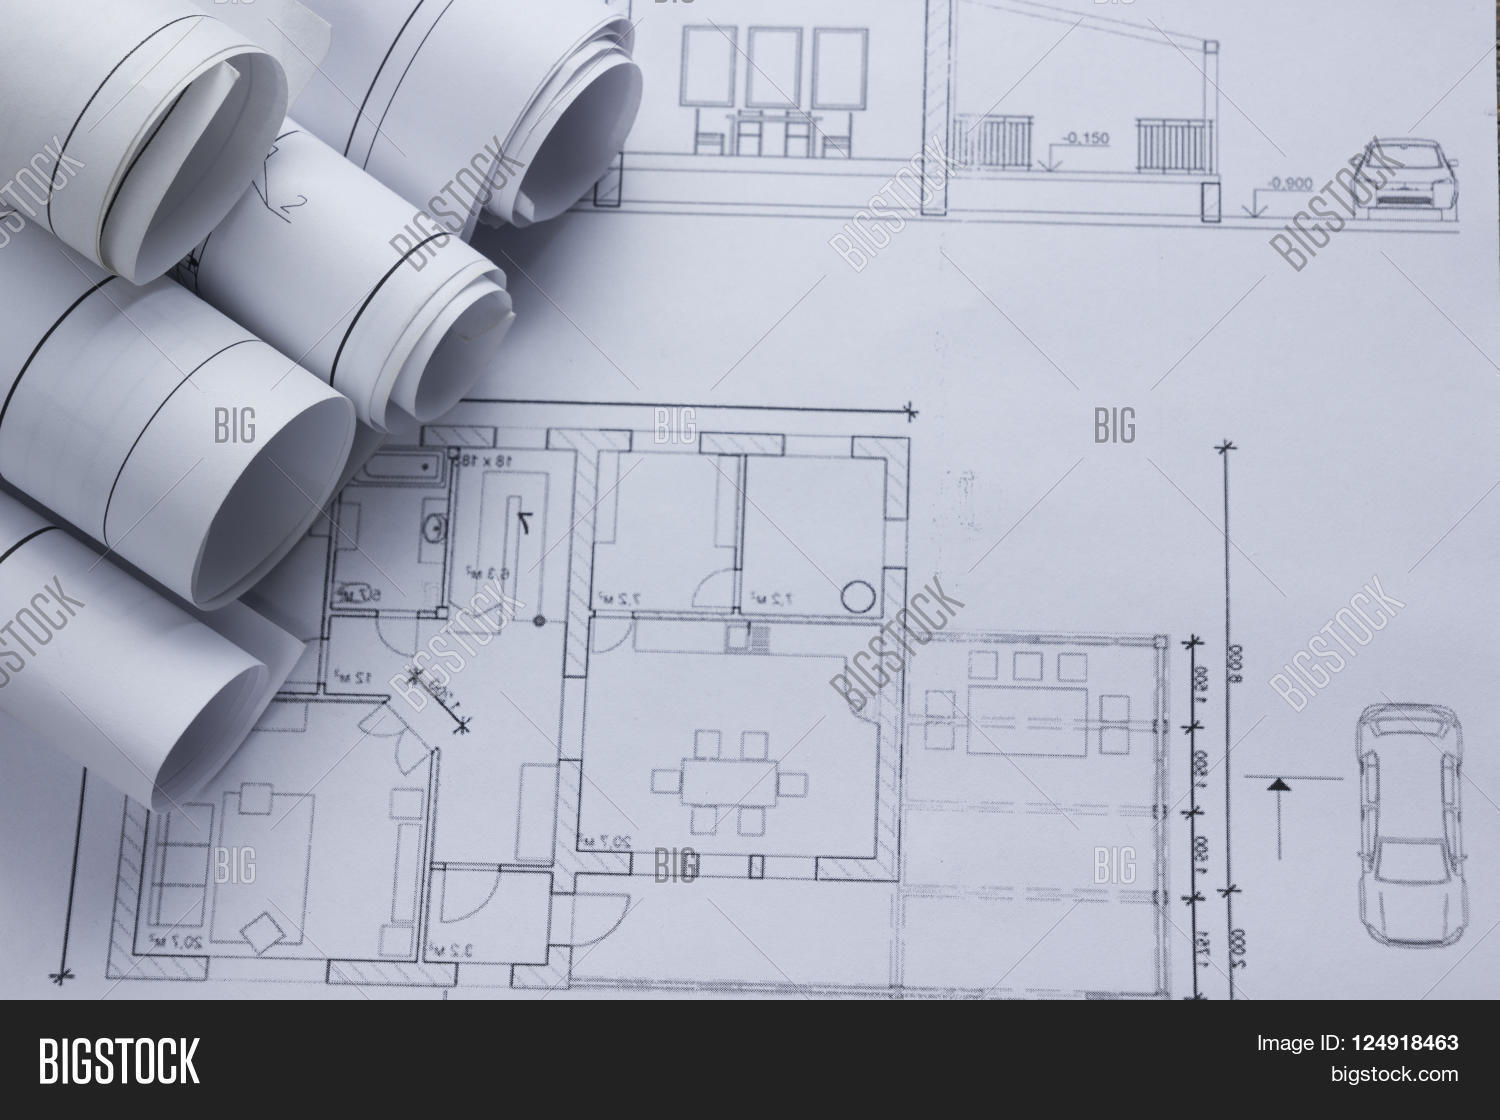 Architect worplace top view image photo bigstock for Copy architectural plans